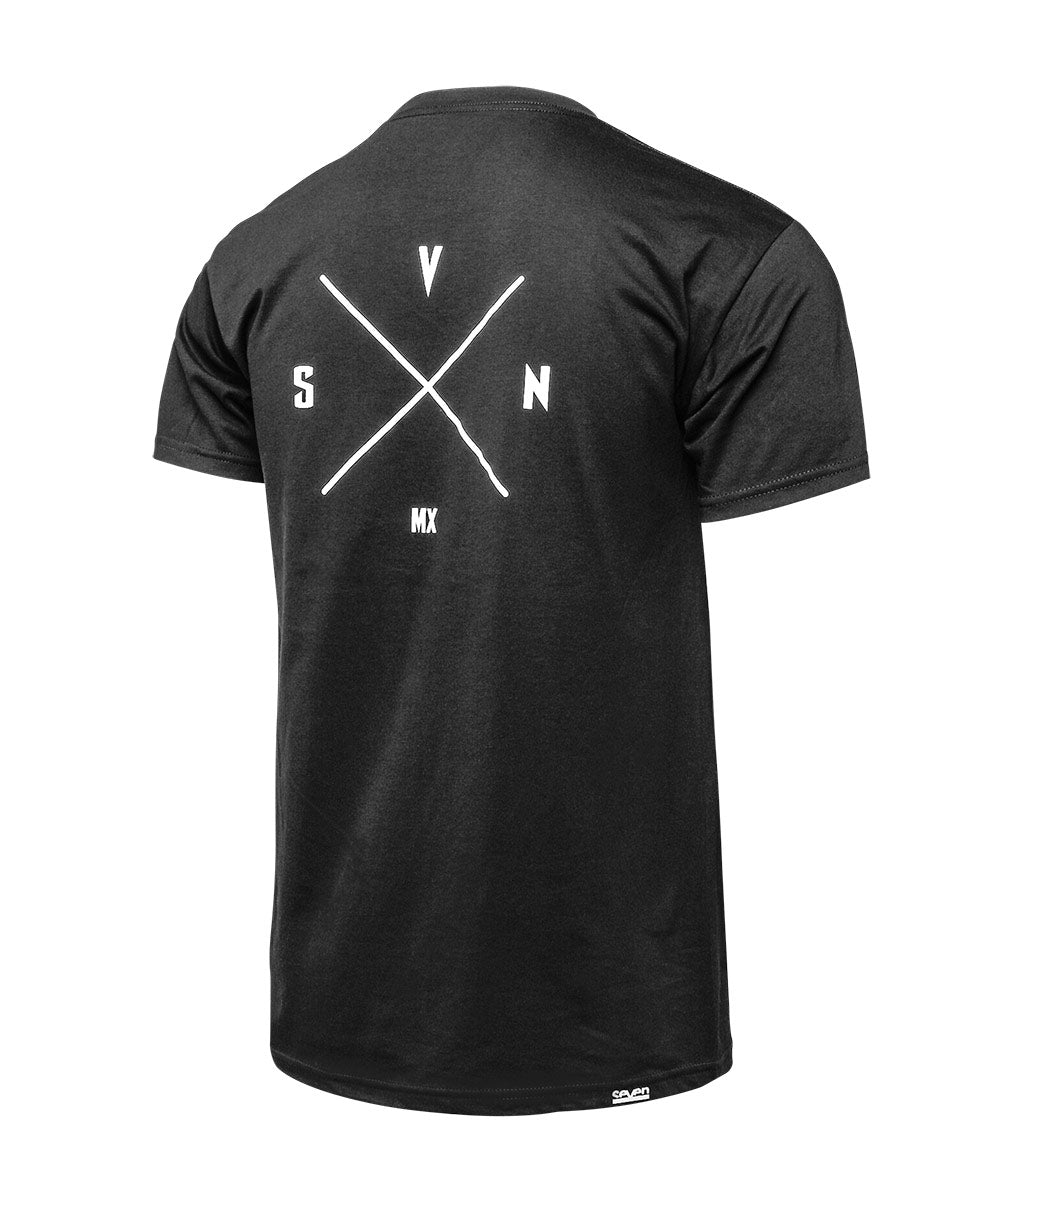 Benchmark Tee - Black